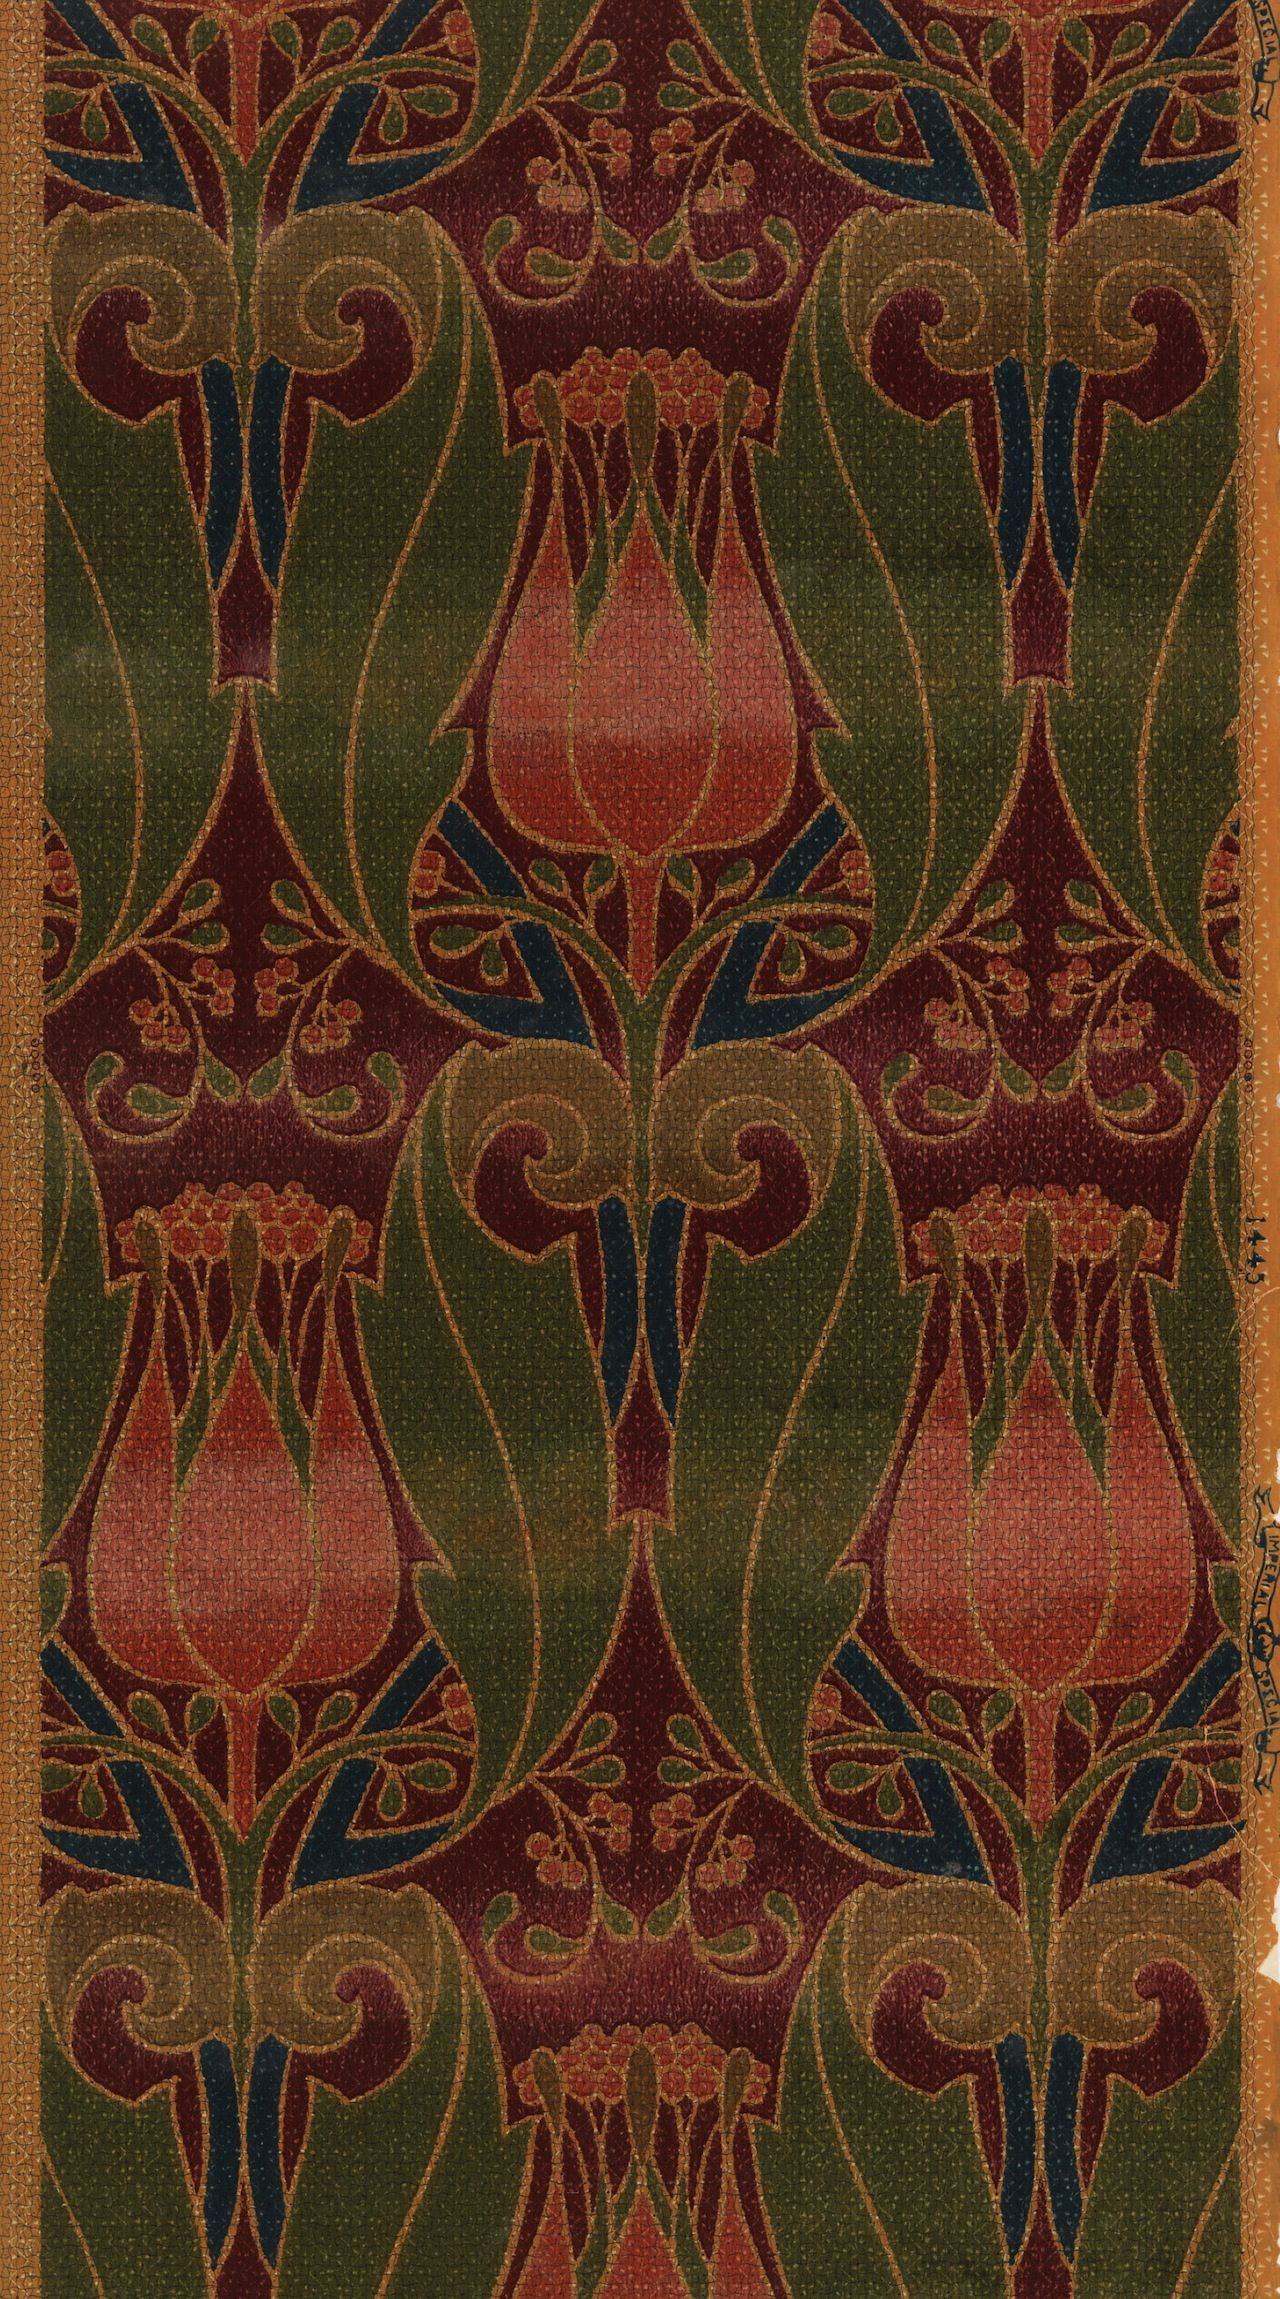 Art Nouveau wallpaper featuring tulips and foliate scrolls. Machine printed by Imperial Wallcoverings, 1900-10 | More Than 6,000 Wallpaper Designs Digitized, December 31, 2014